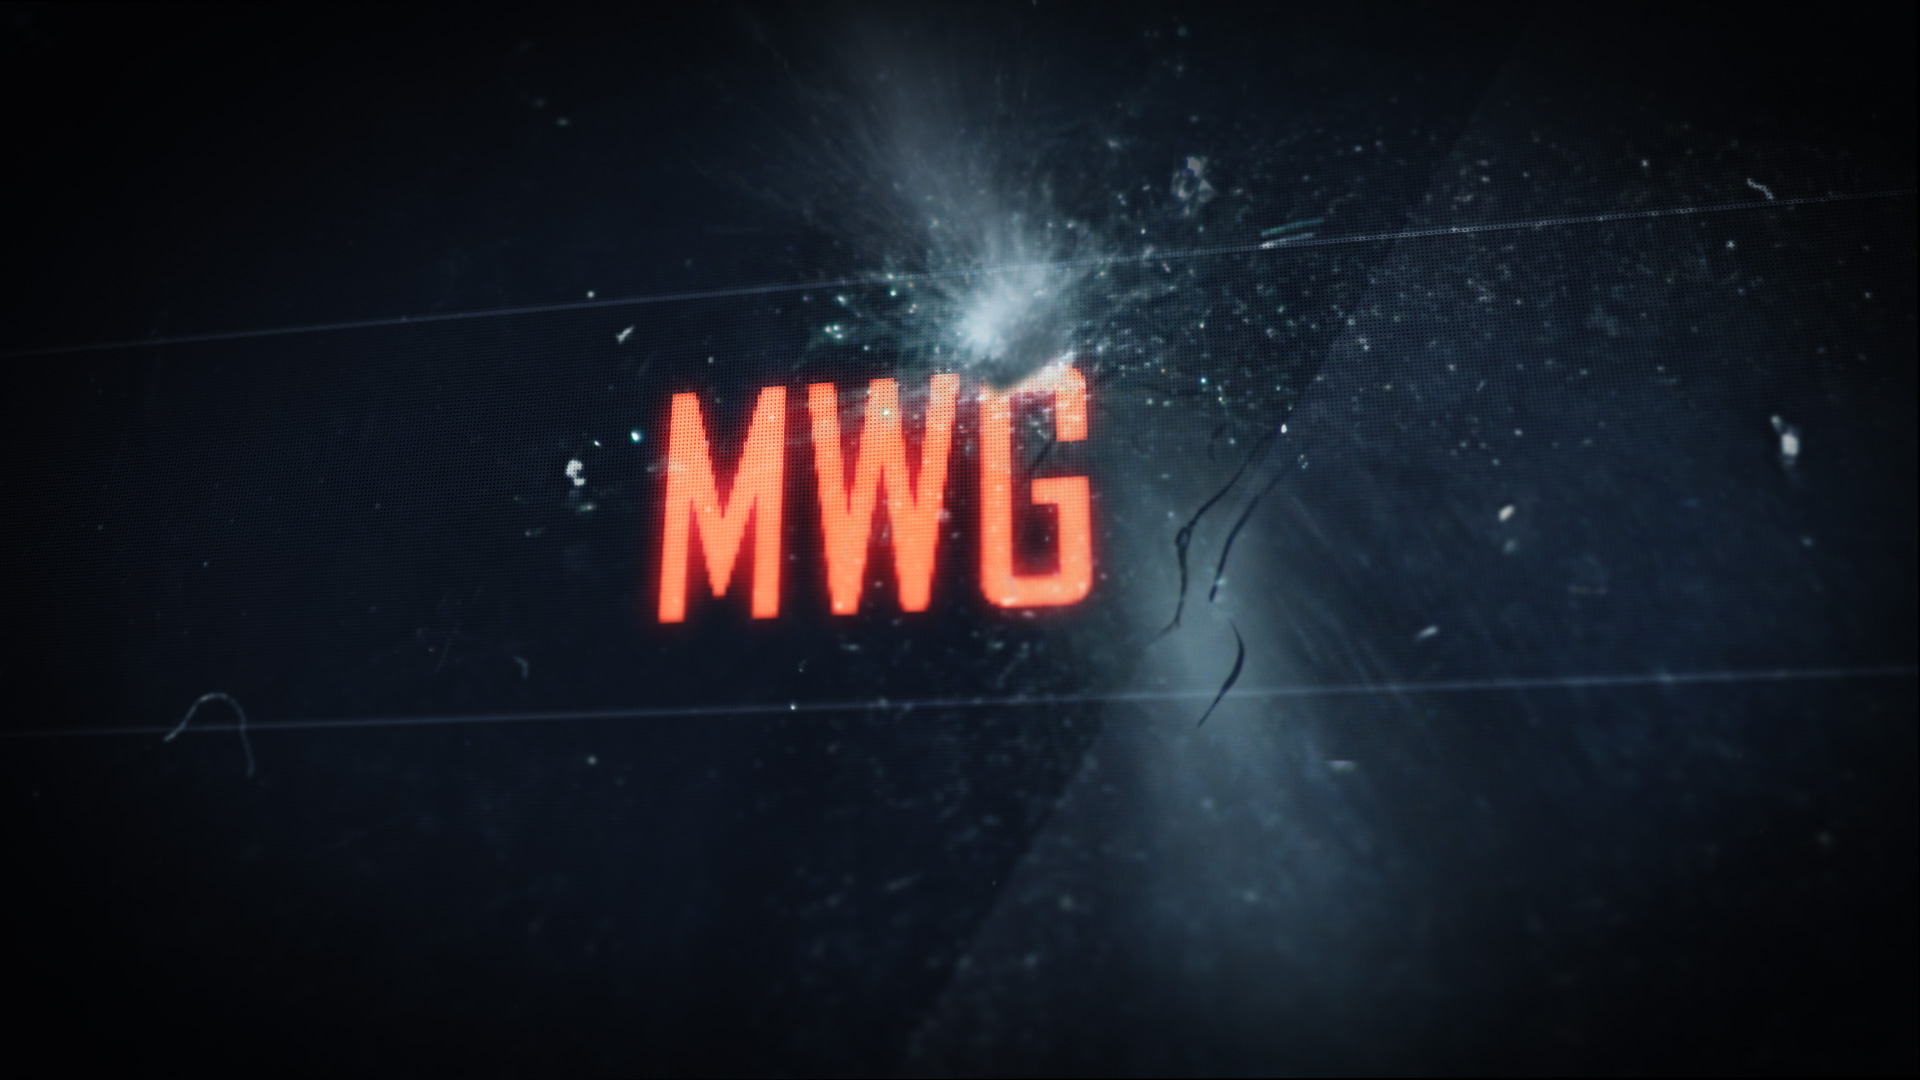 MWG (Working Title, 2018/2019)